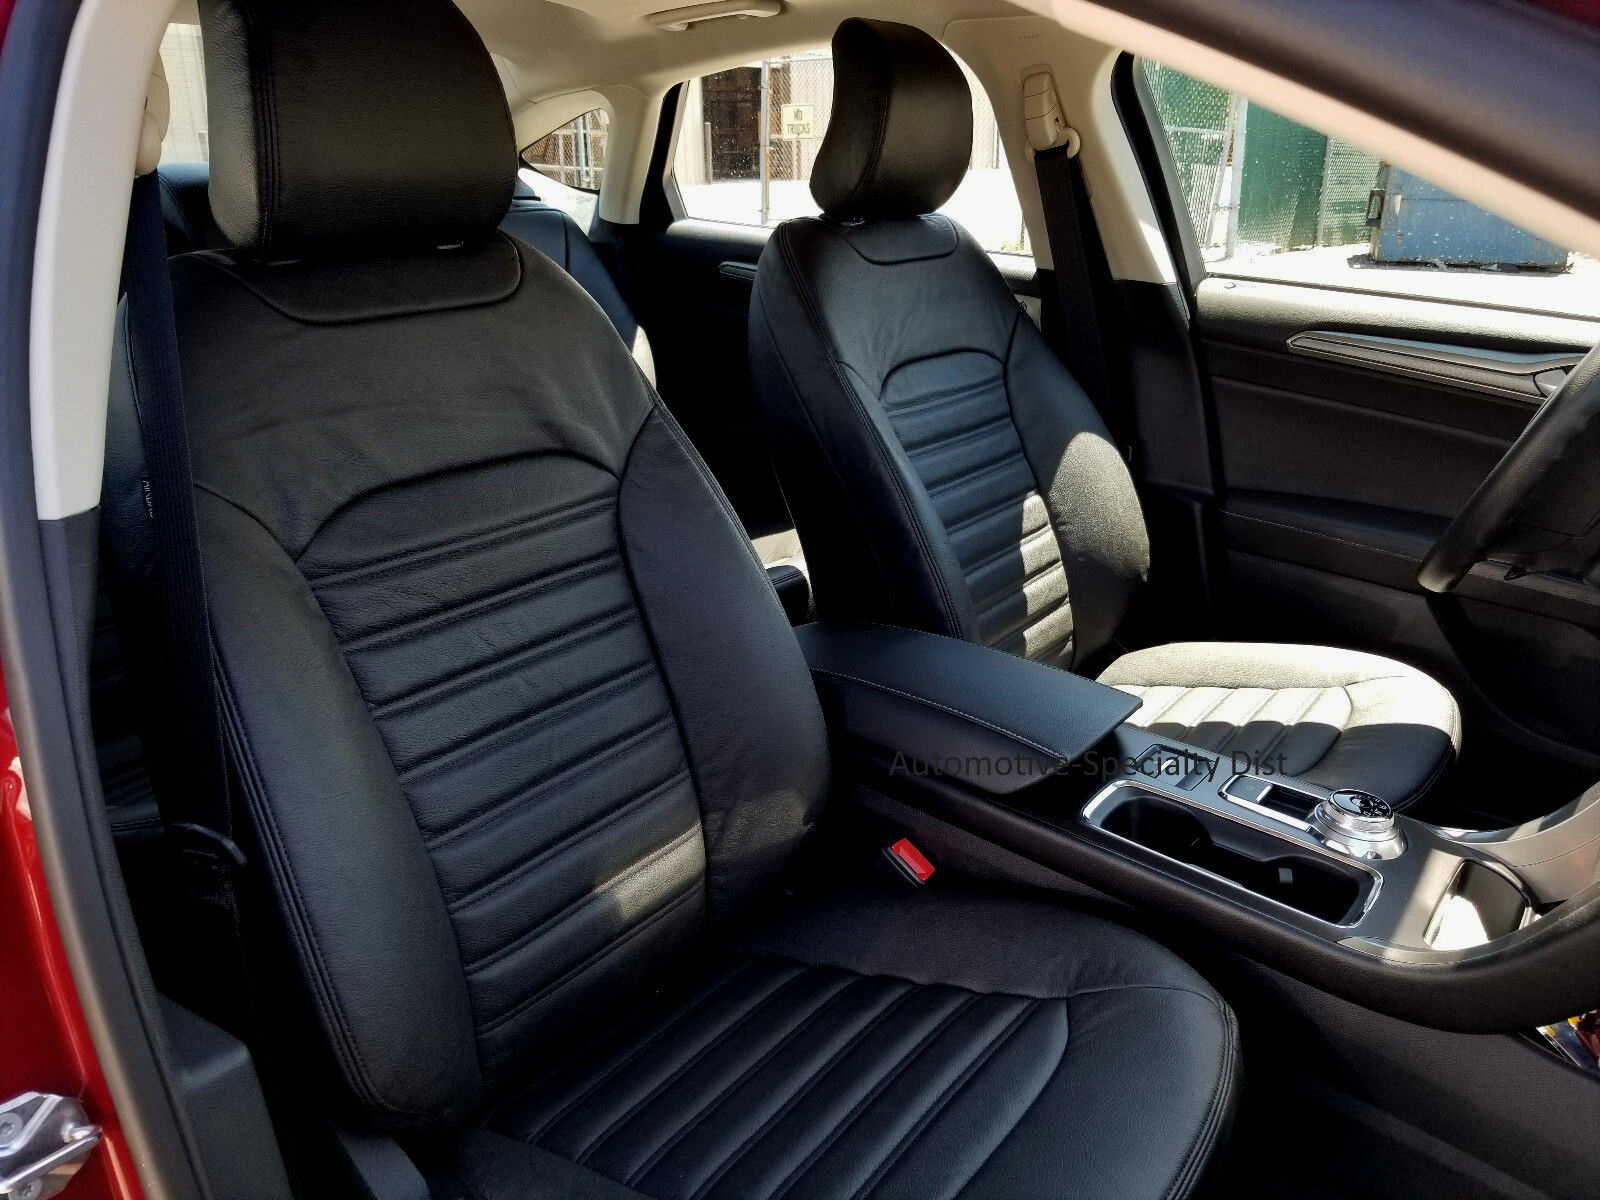 Pleasant Details About Katzkin Black Repla Leather Int Seat Cvr Fits 2017 2019 Ford Fusion Se Se Hybrid Gmtry Best Dining Table And Chair Ideas Images Gmtryco